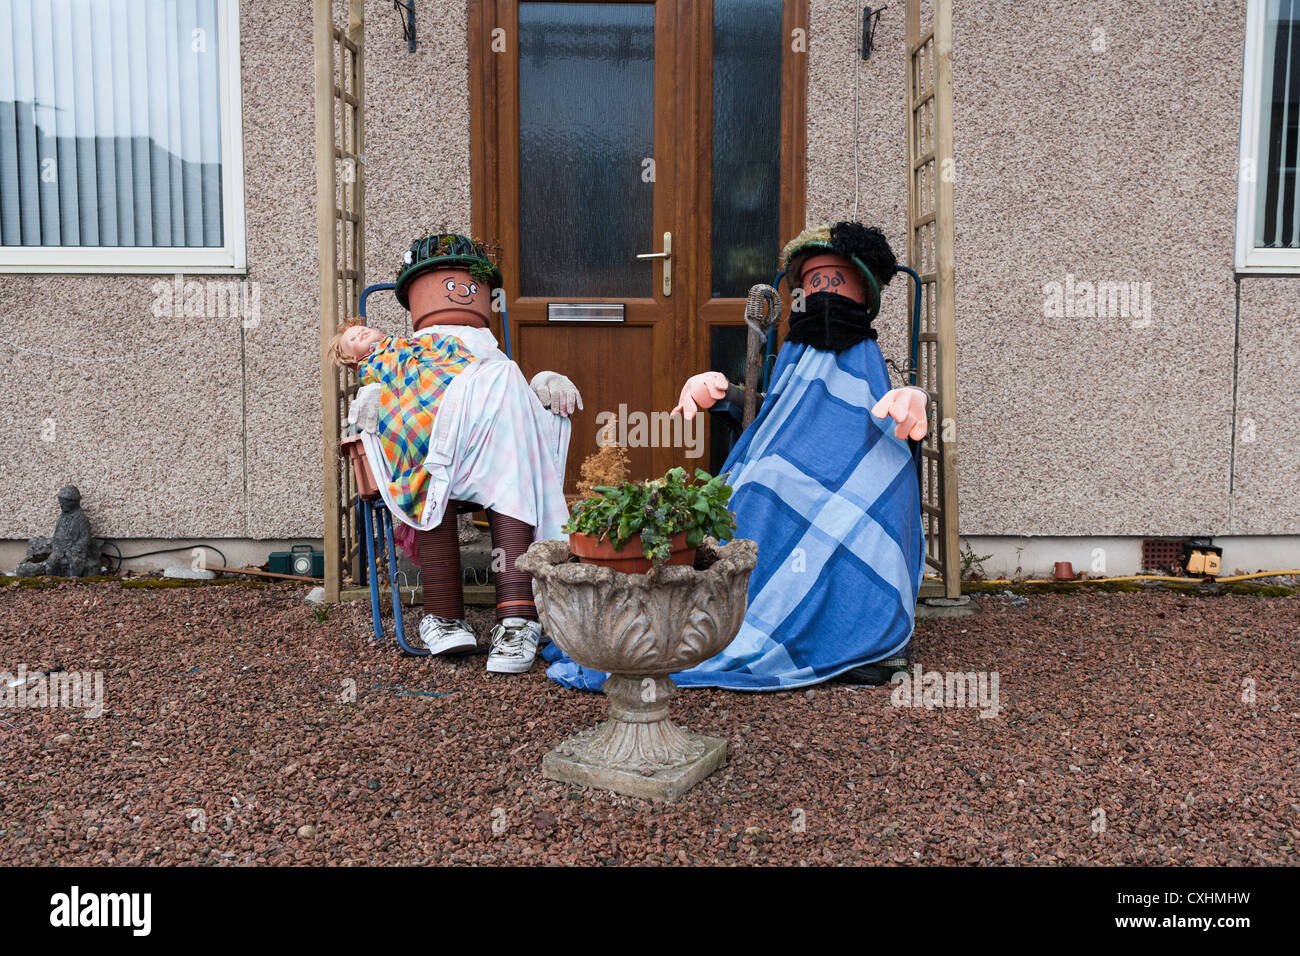 Two plant pot people sitting outside their house. - Stock Image